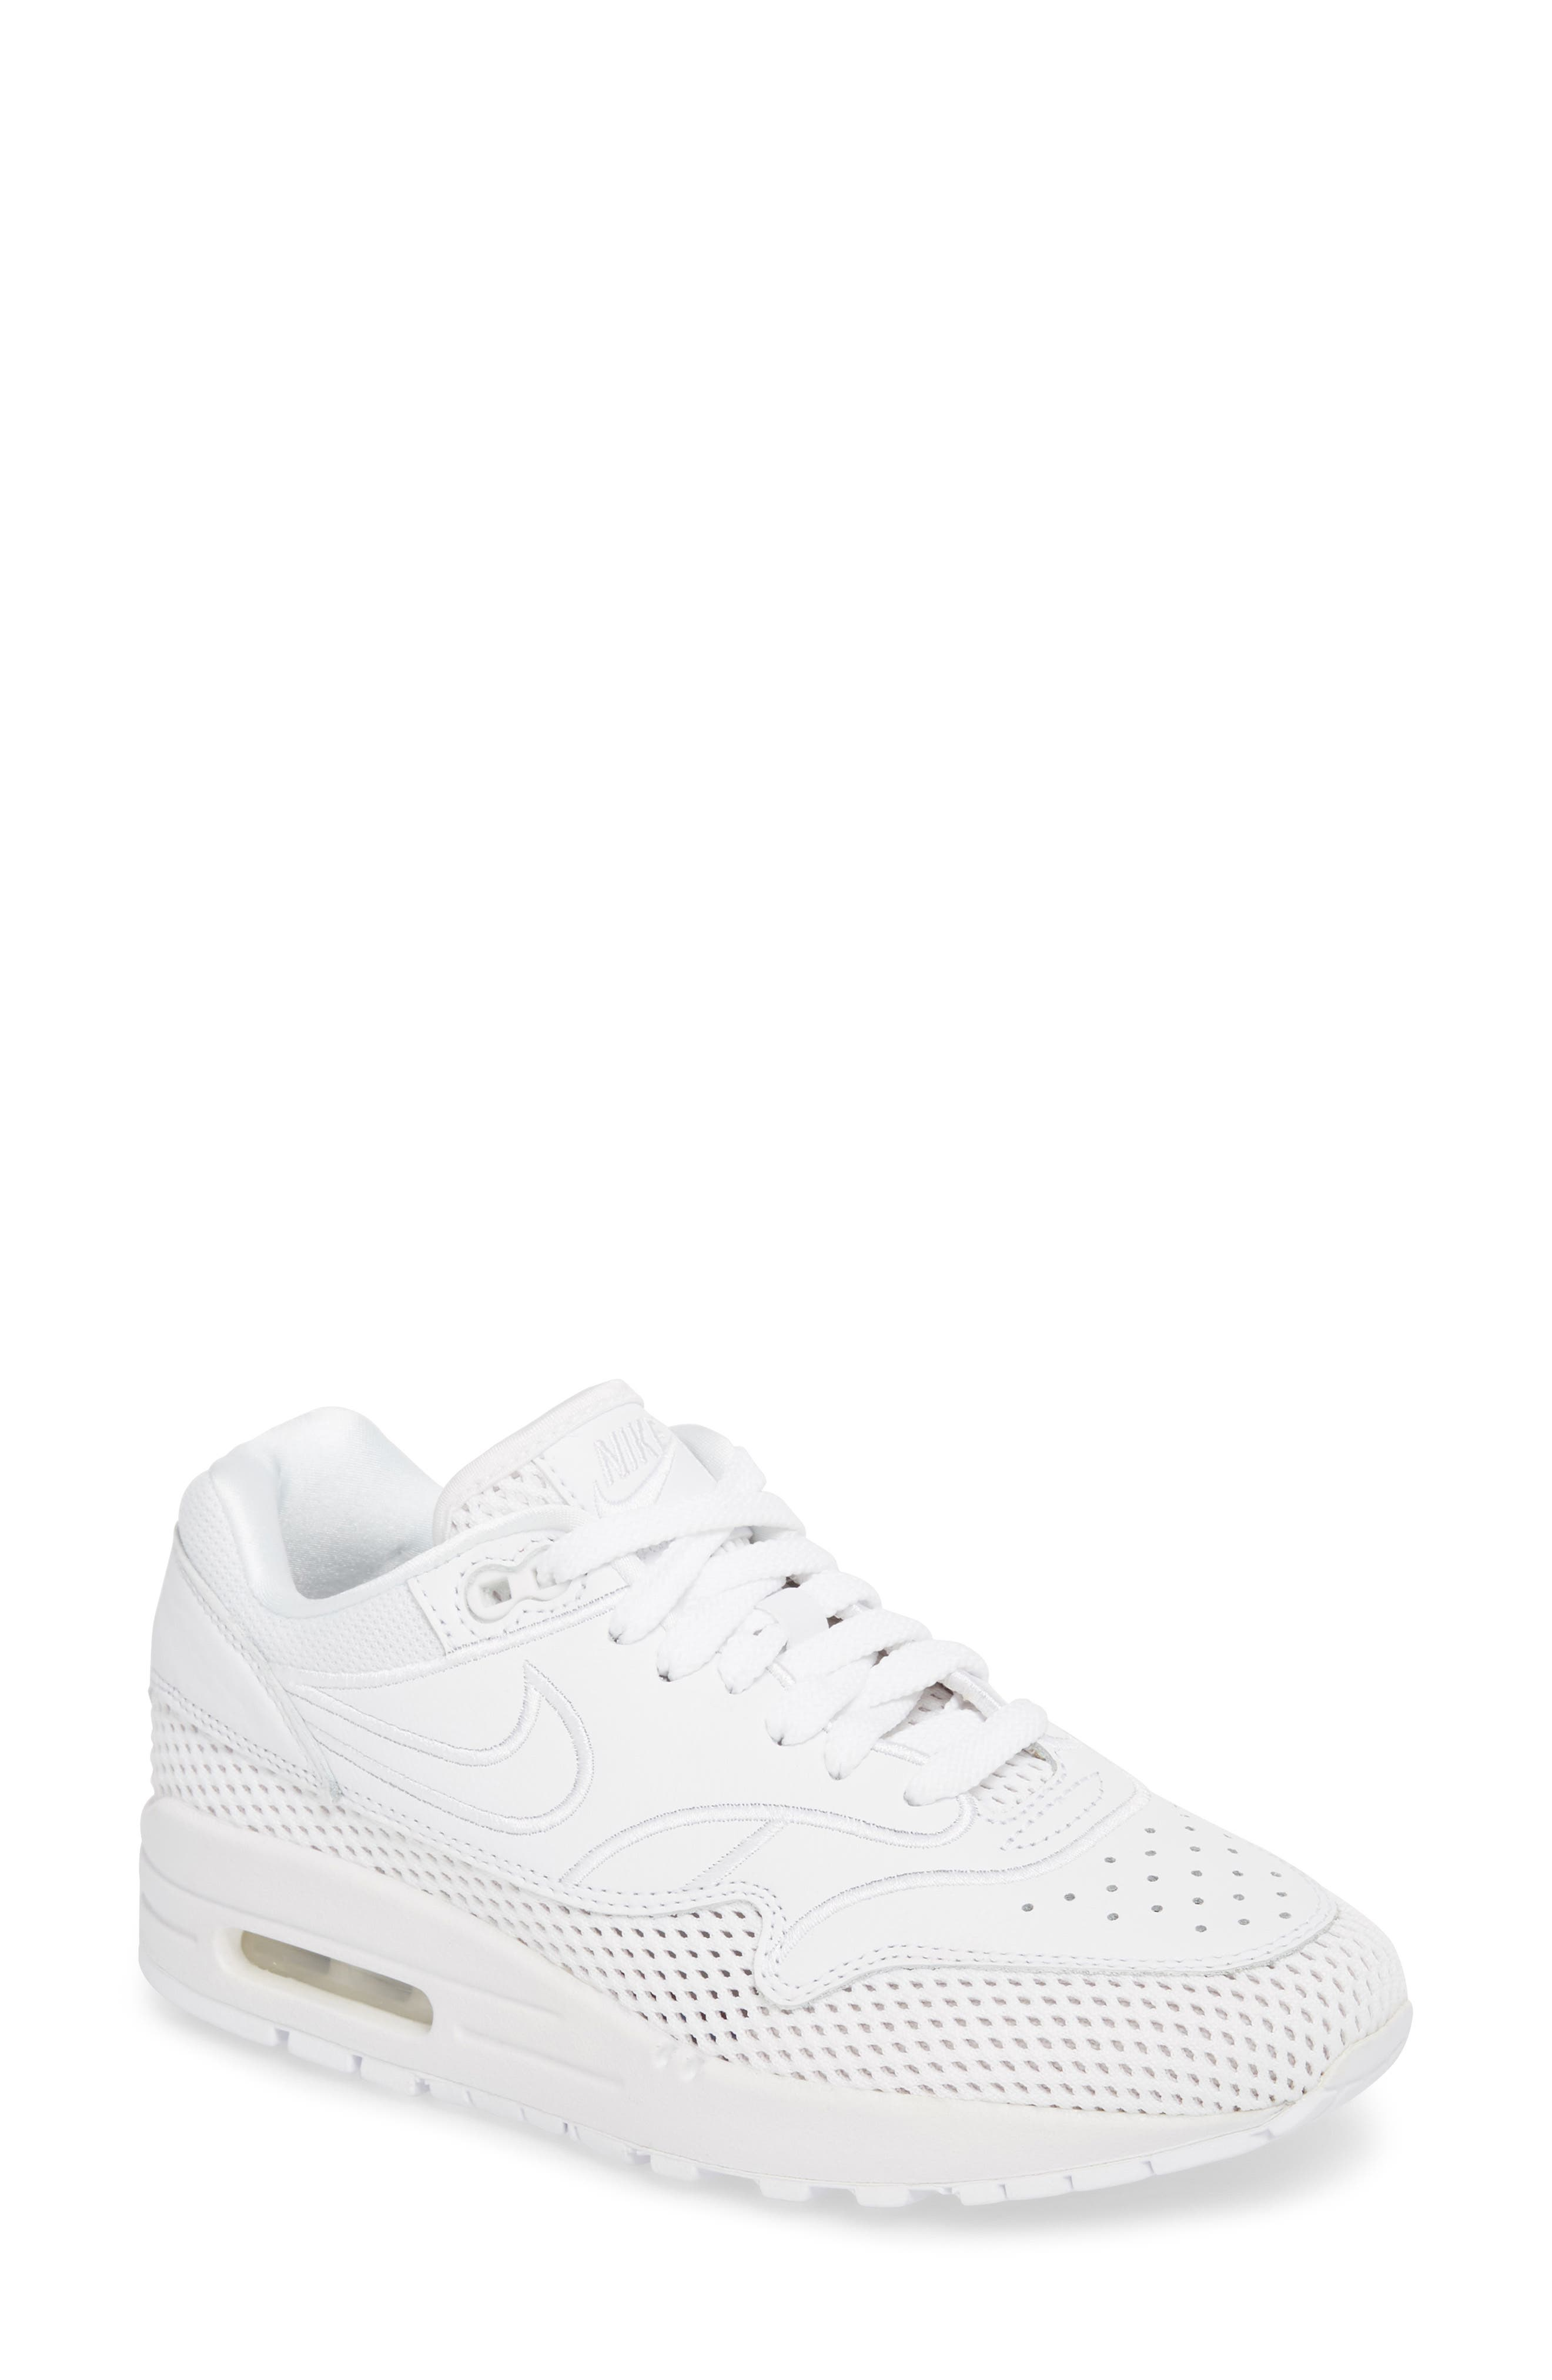 Air Max 1 SI Sneaker,                         Main,                         color, White/ White-Vast Grey